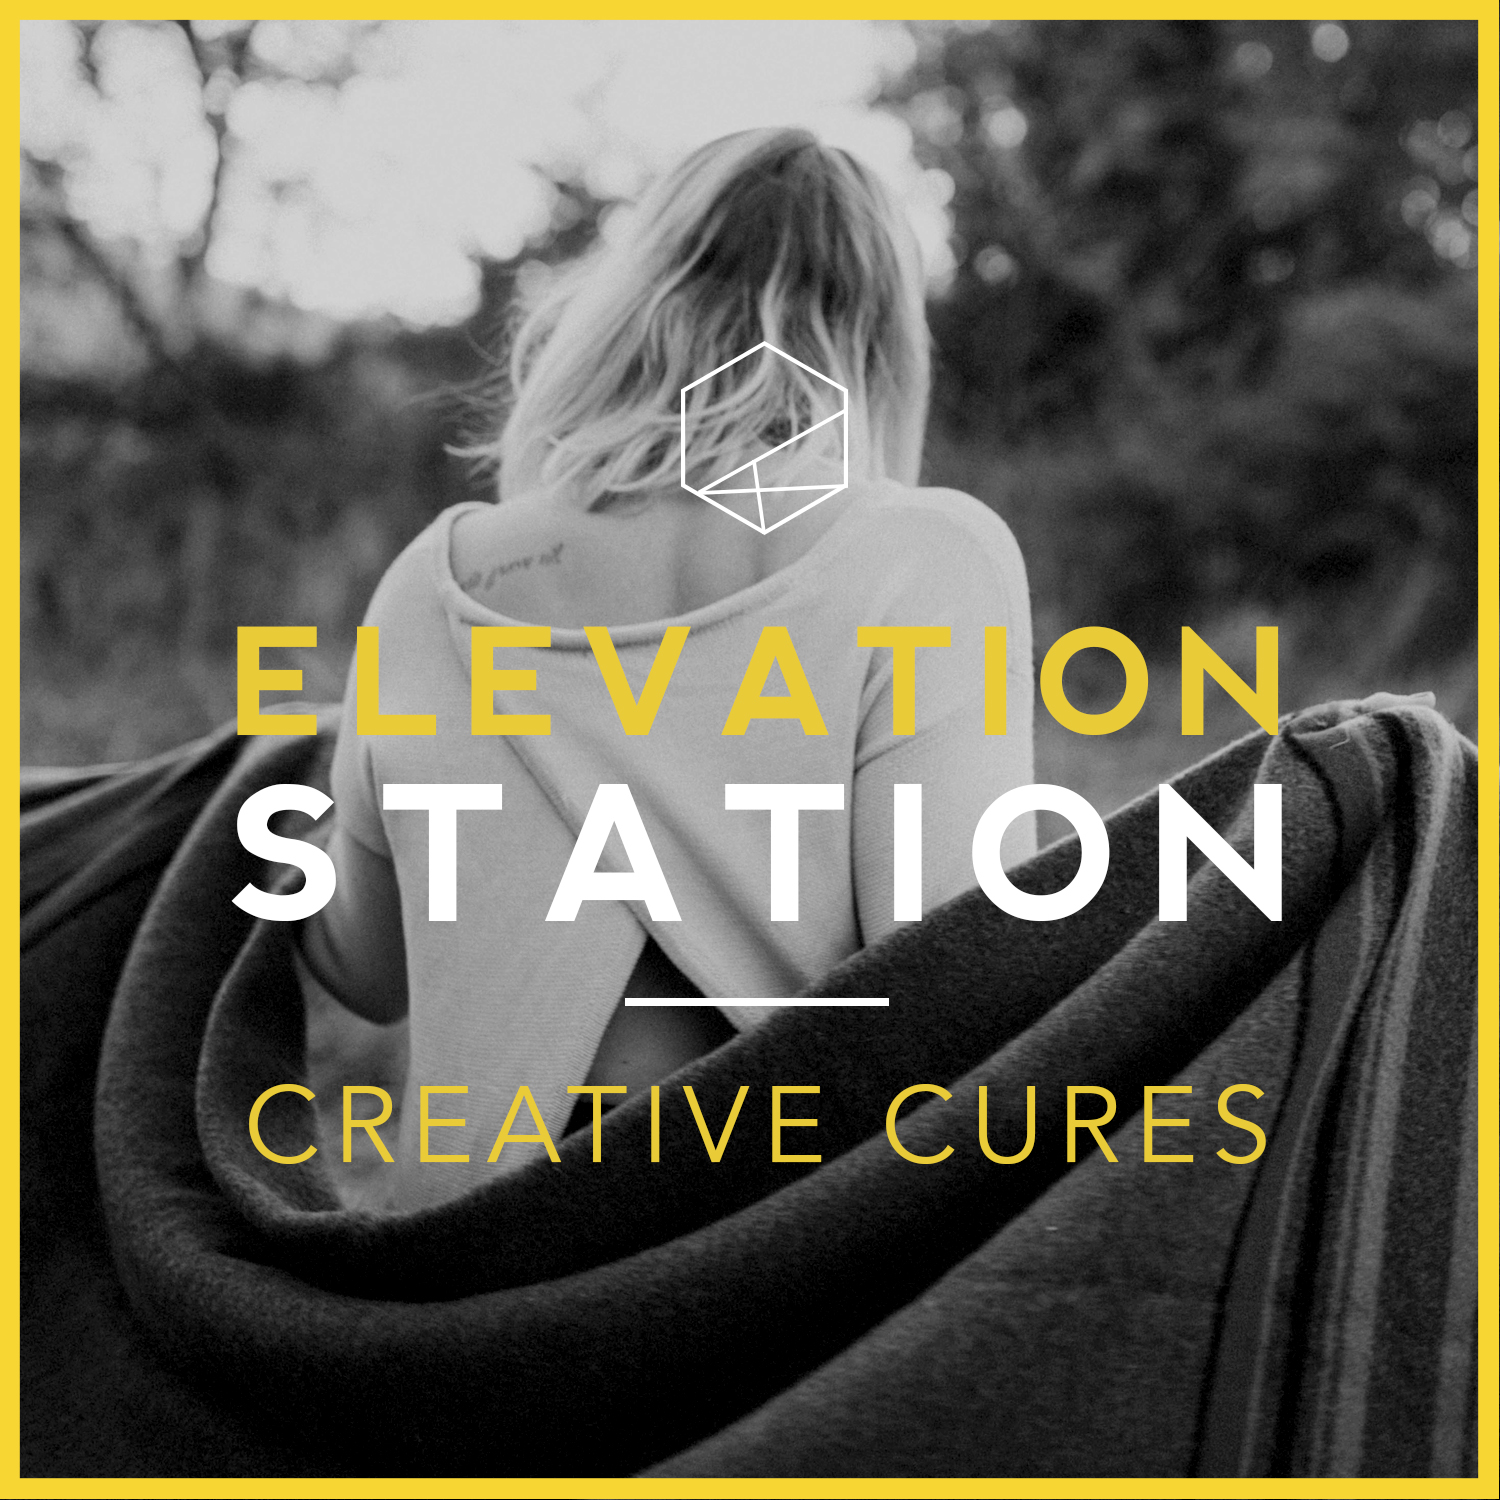 cannabis-cleanse-elevation-station-creative-cures.jpg